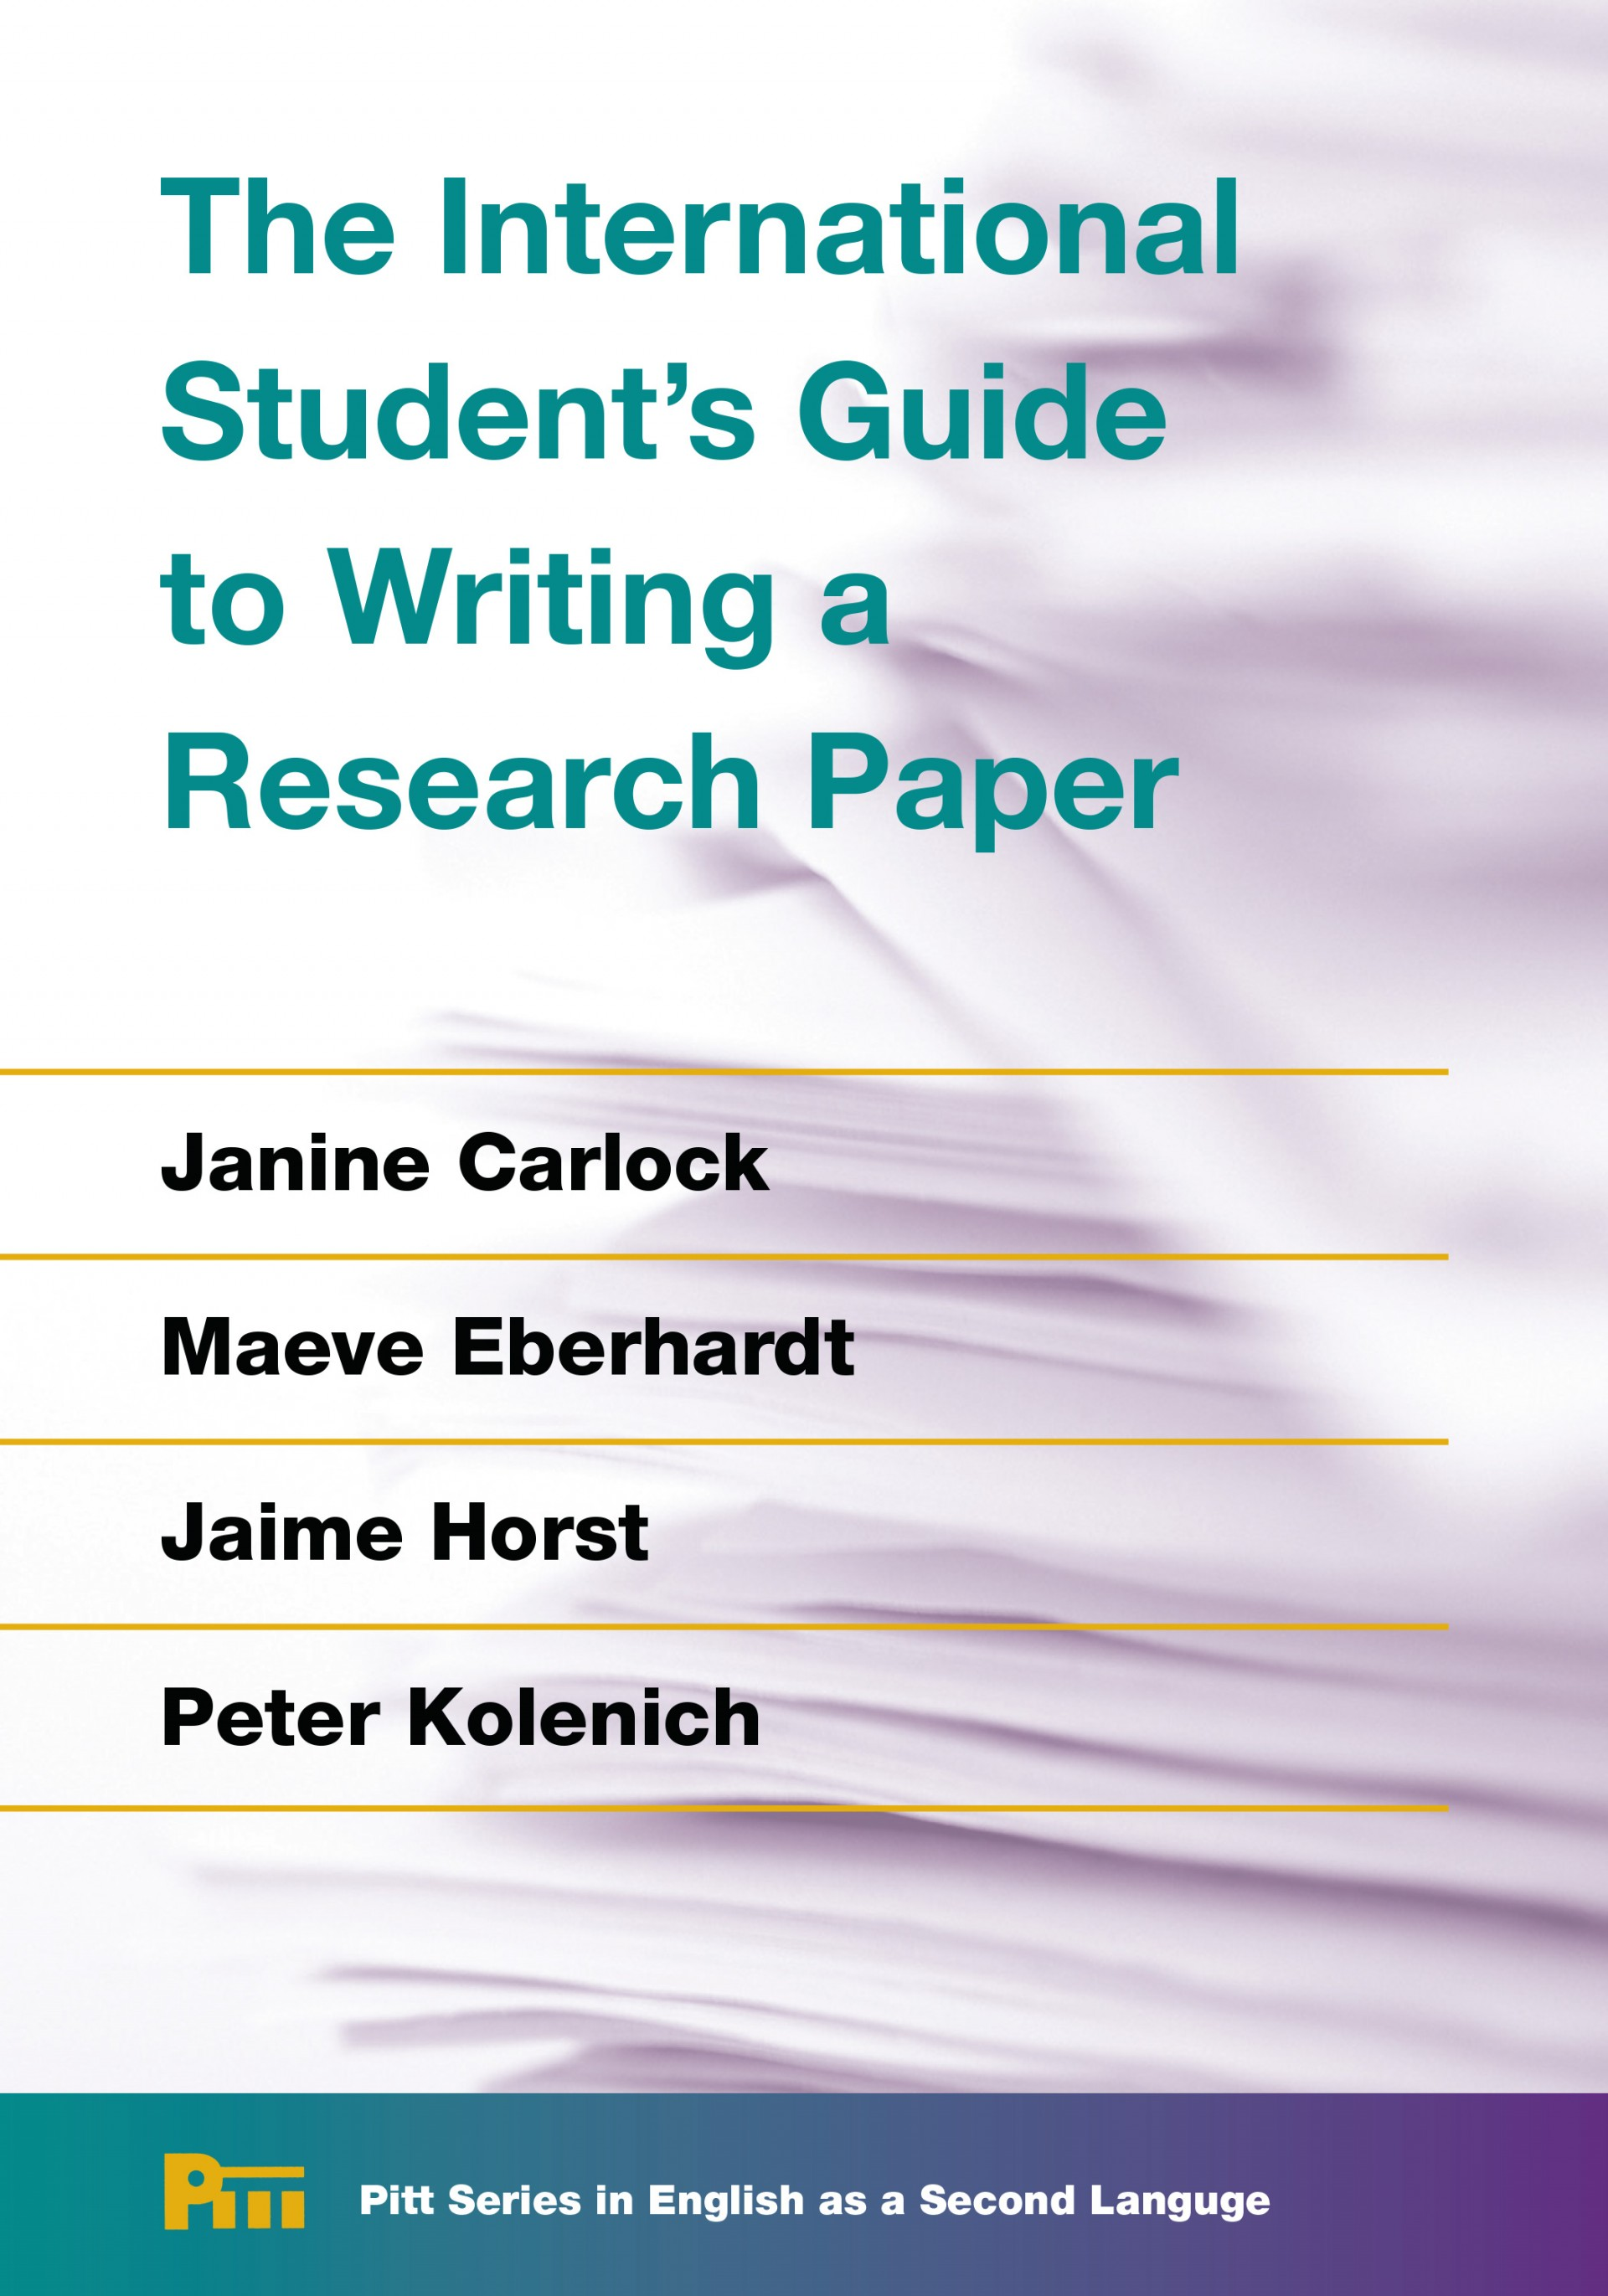 013 Writing The Research Paper Phenomenal How To Write A Outline Mla Papers Complete Guide 16th Edition Pdf Free 1920